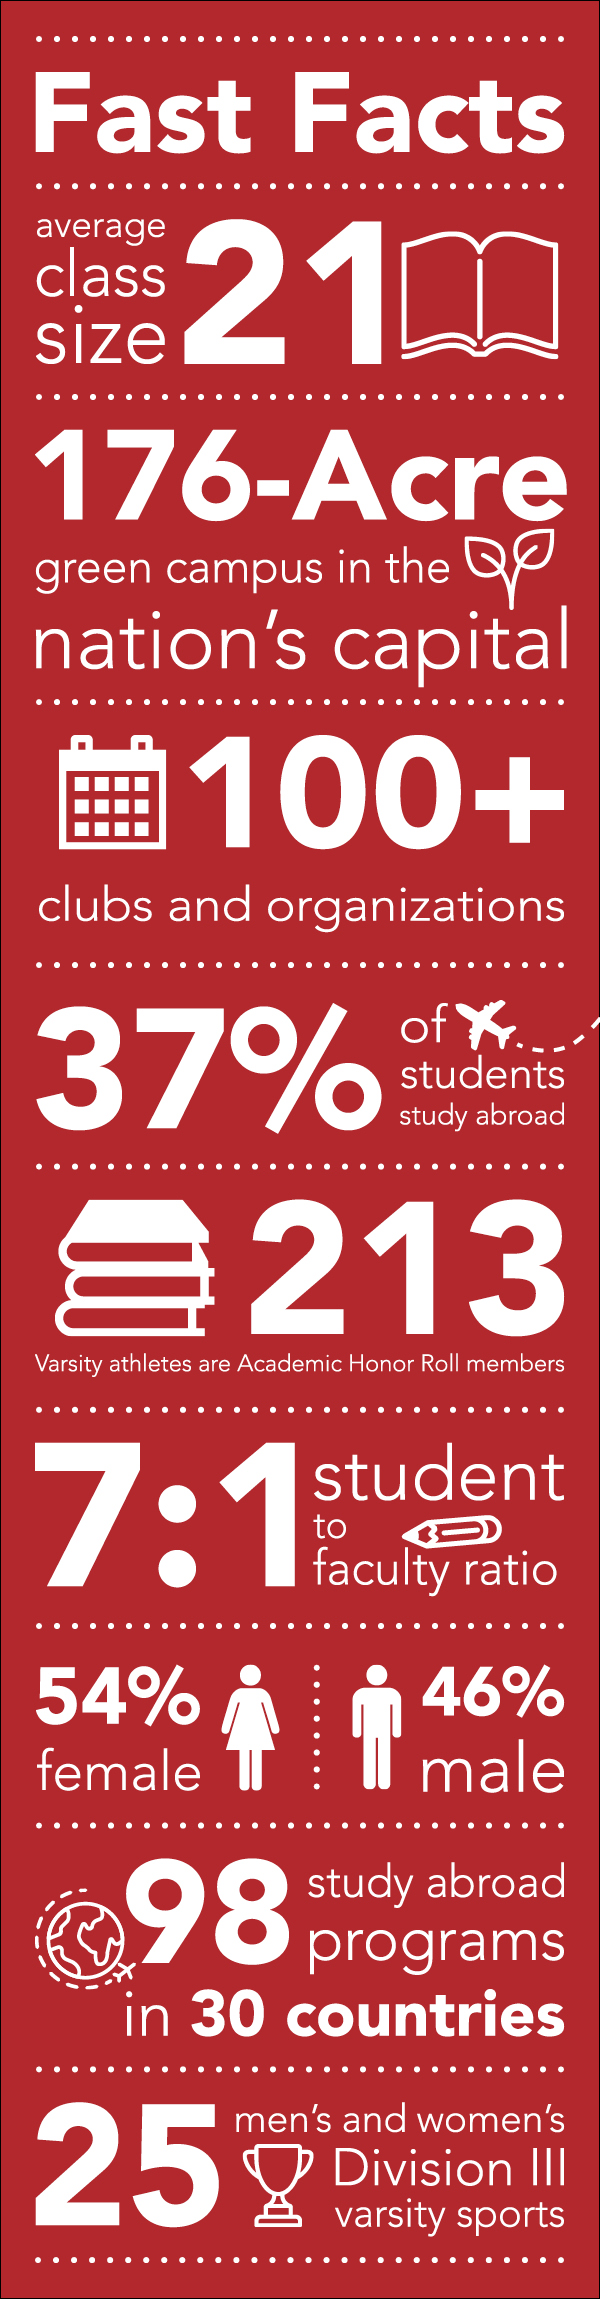 An infographic with fast facts about the student body at Catholic University. The average class size is 21 students. The campus has 176 acres in the nation's capital. There are more than 100 clubs and organizations. 37% of students study abroad. 213 varsity athletes are Academic Honor Roll members. The ratio of students to faculty is 7 to 1. The student body is 54% female and 46% male. Catholic University offers 98 study abroad programs in 30 countries. The university offers 25 men's and women's Division III sports.